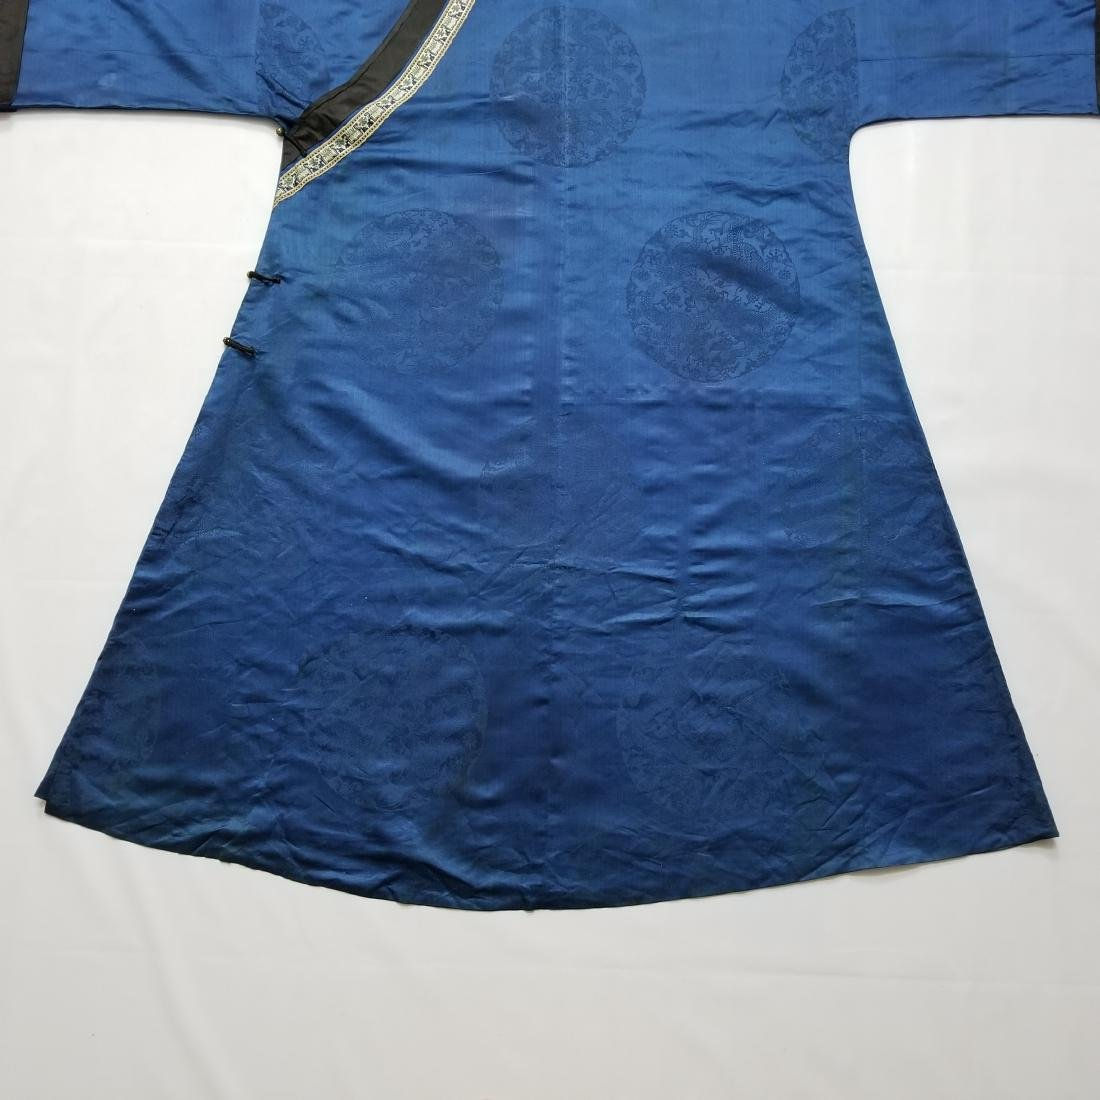 Antique Chinese Silk Robe with G T Marsh & Co. Stamp - 7